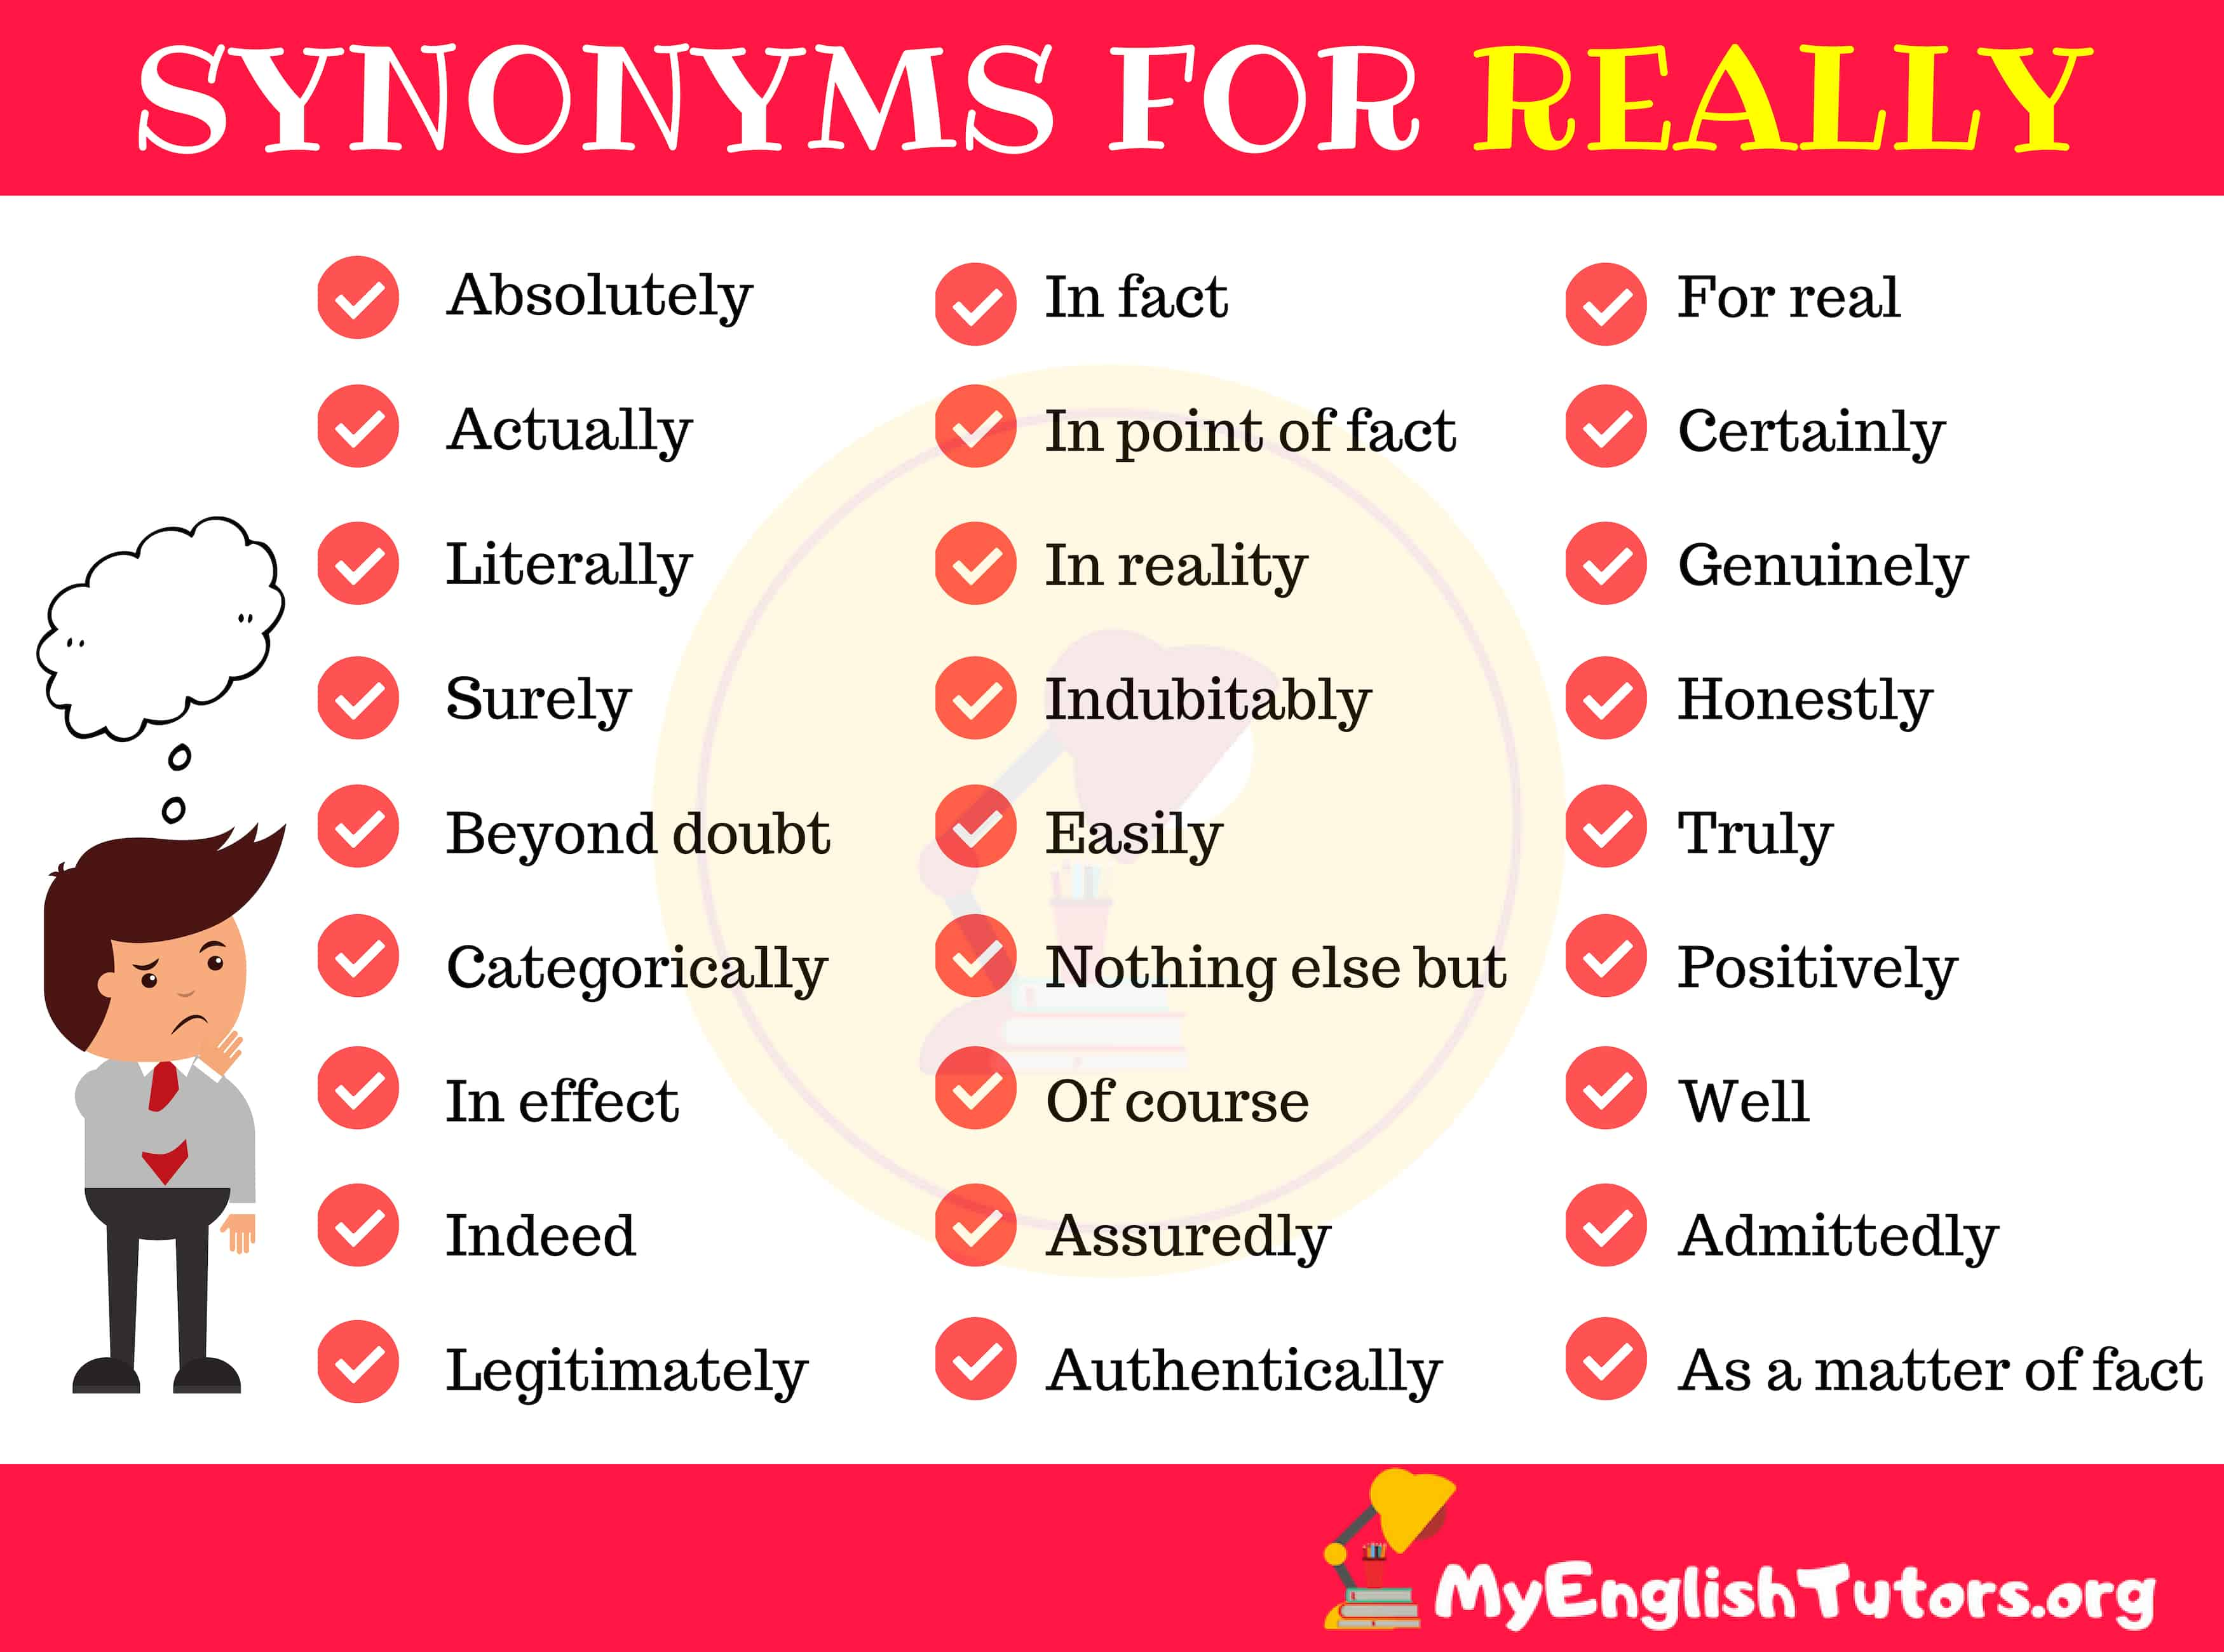 Synonyms for REALLY in English